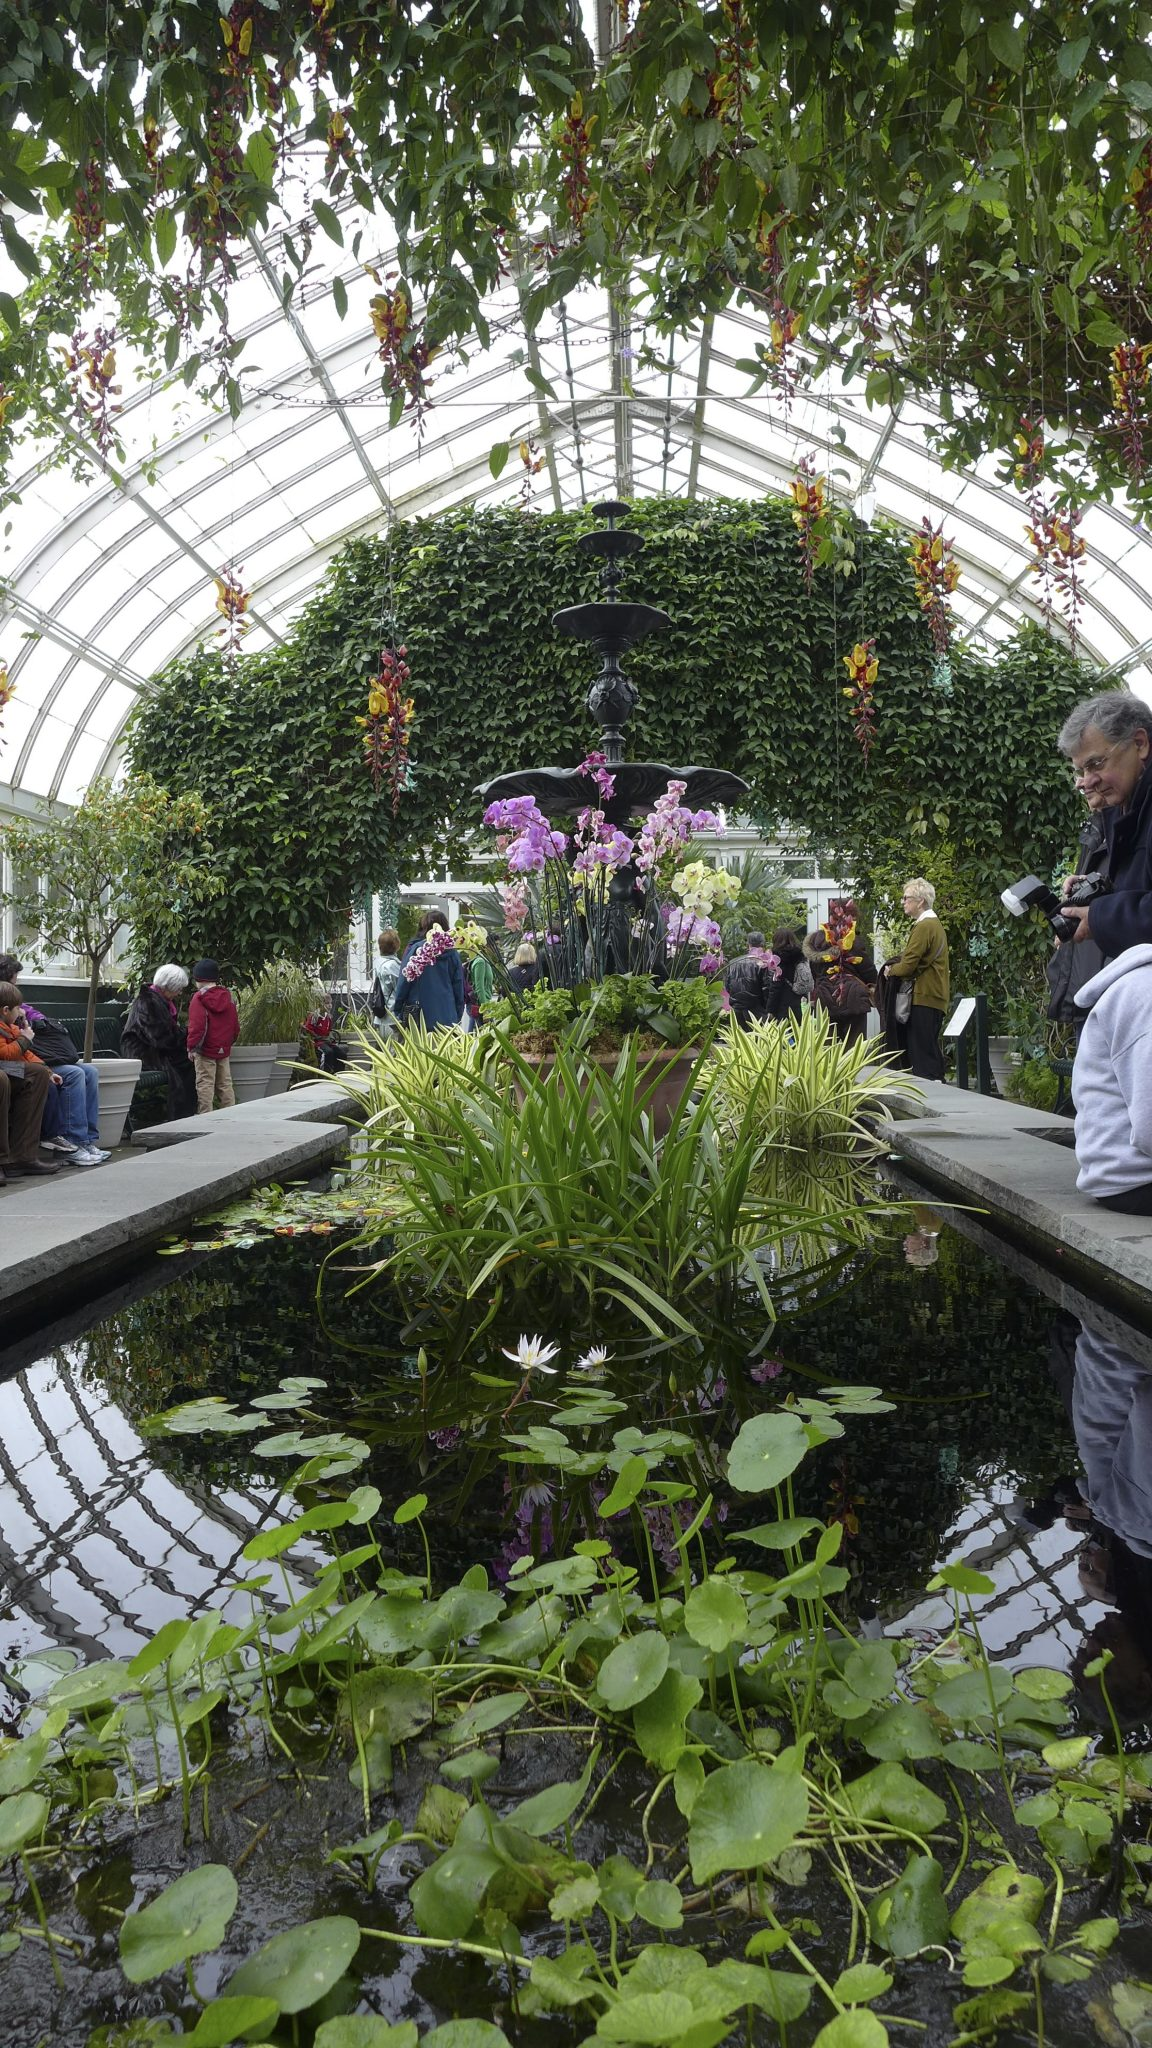 Interior of the Enid Haupt Conservatory of the NYBG in New York City